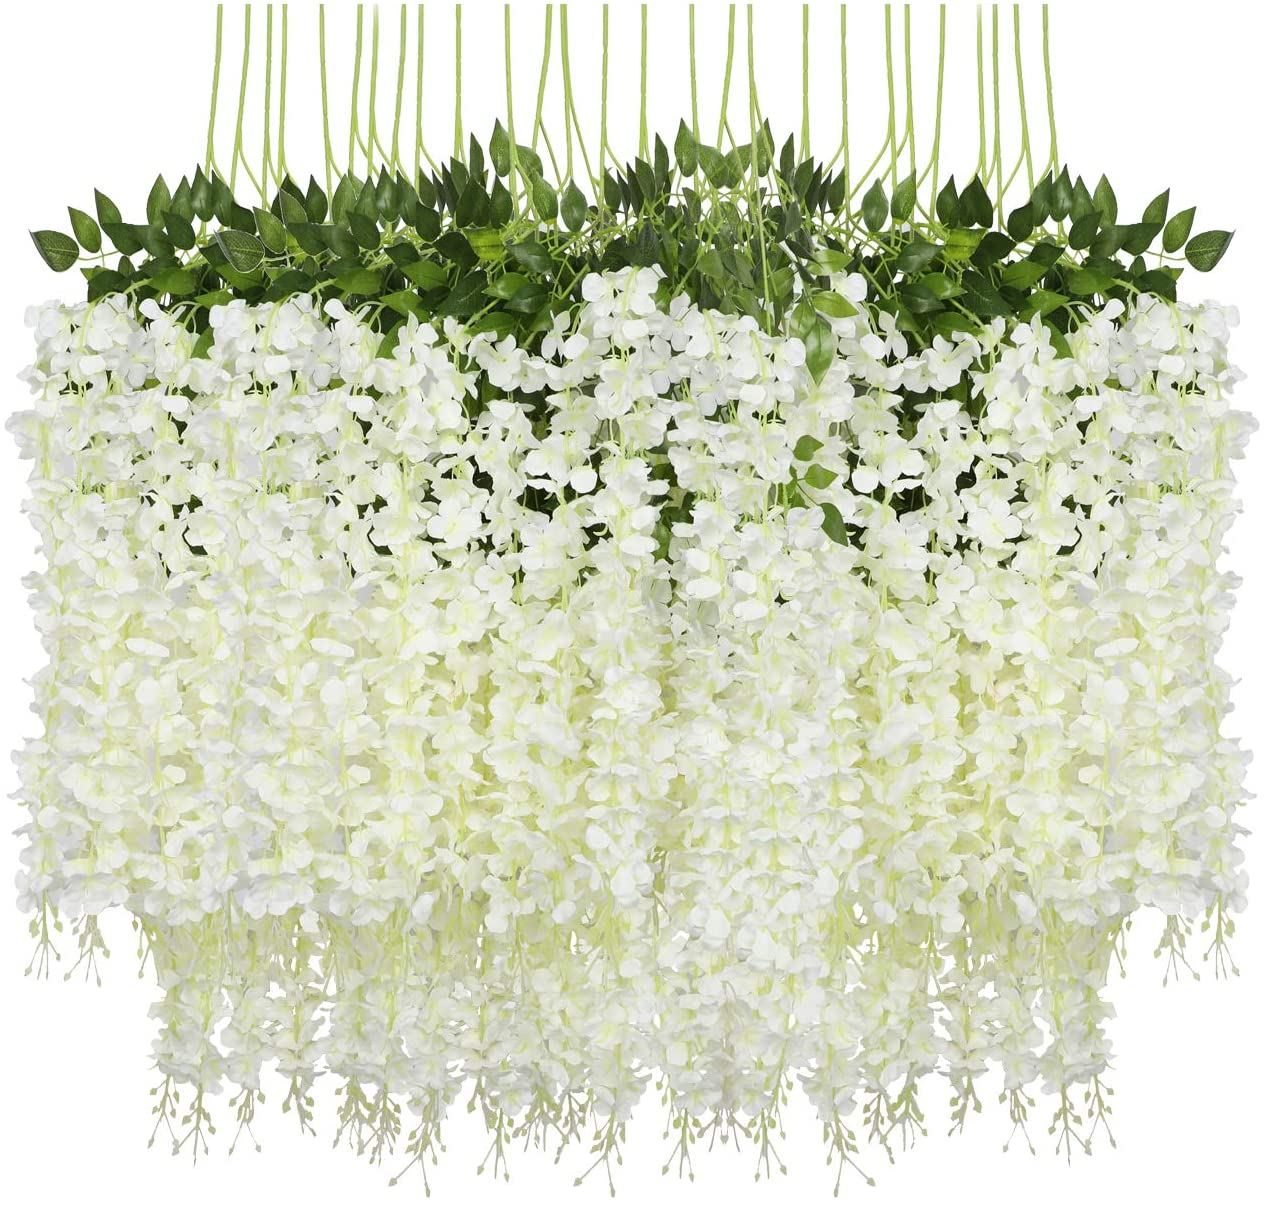 12 Pack Artificial Wisteria Vine Garland White Fake Silk Wisteria Vine Hanging Flowers String for Home Garden Wedding Decor Indoor and Outdoor Decoration